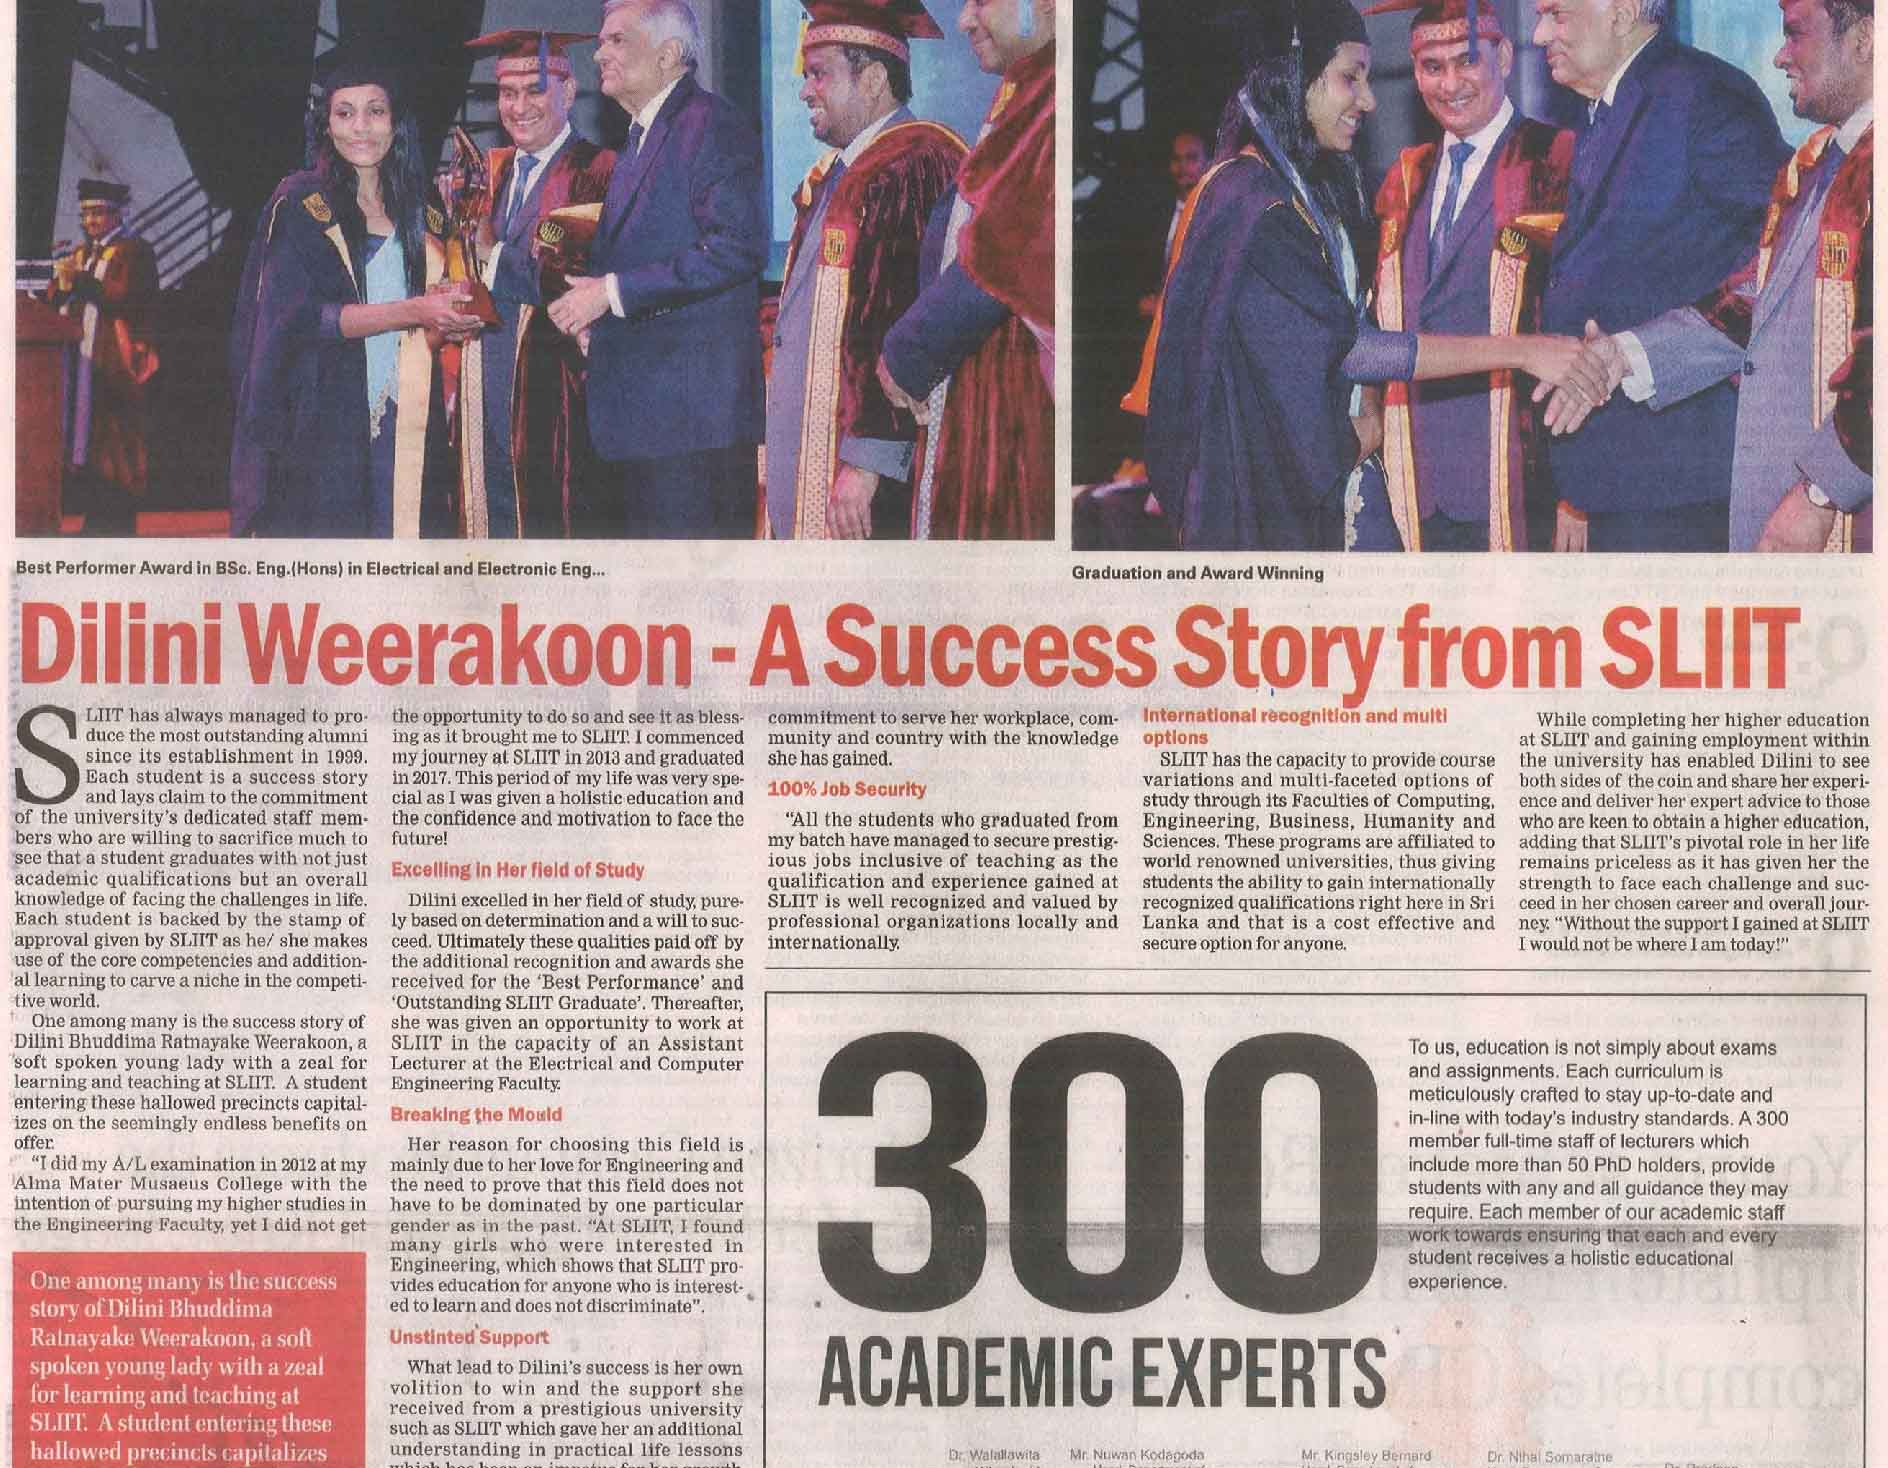 Success-Stories-backed-by-SLIIT-with-Dilini-Weerakoon-Sunday-Times12.08...